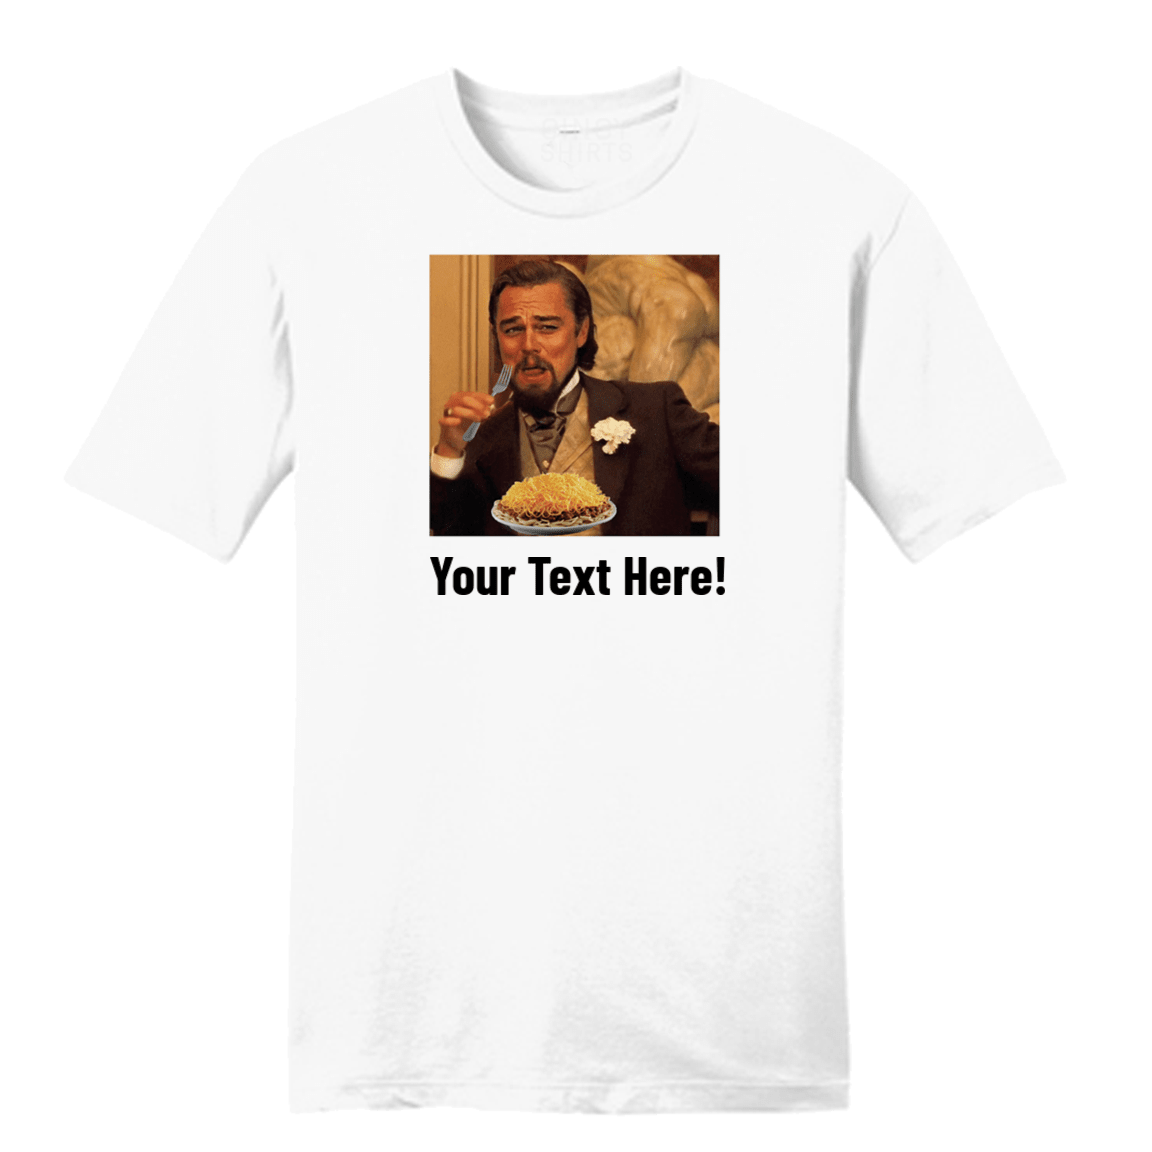 Customize Leo Meme - Cincy Shirts